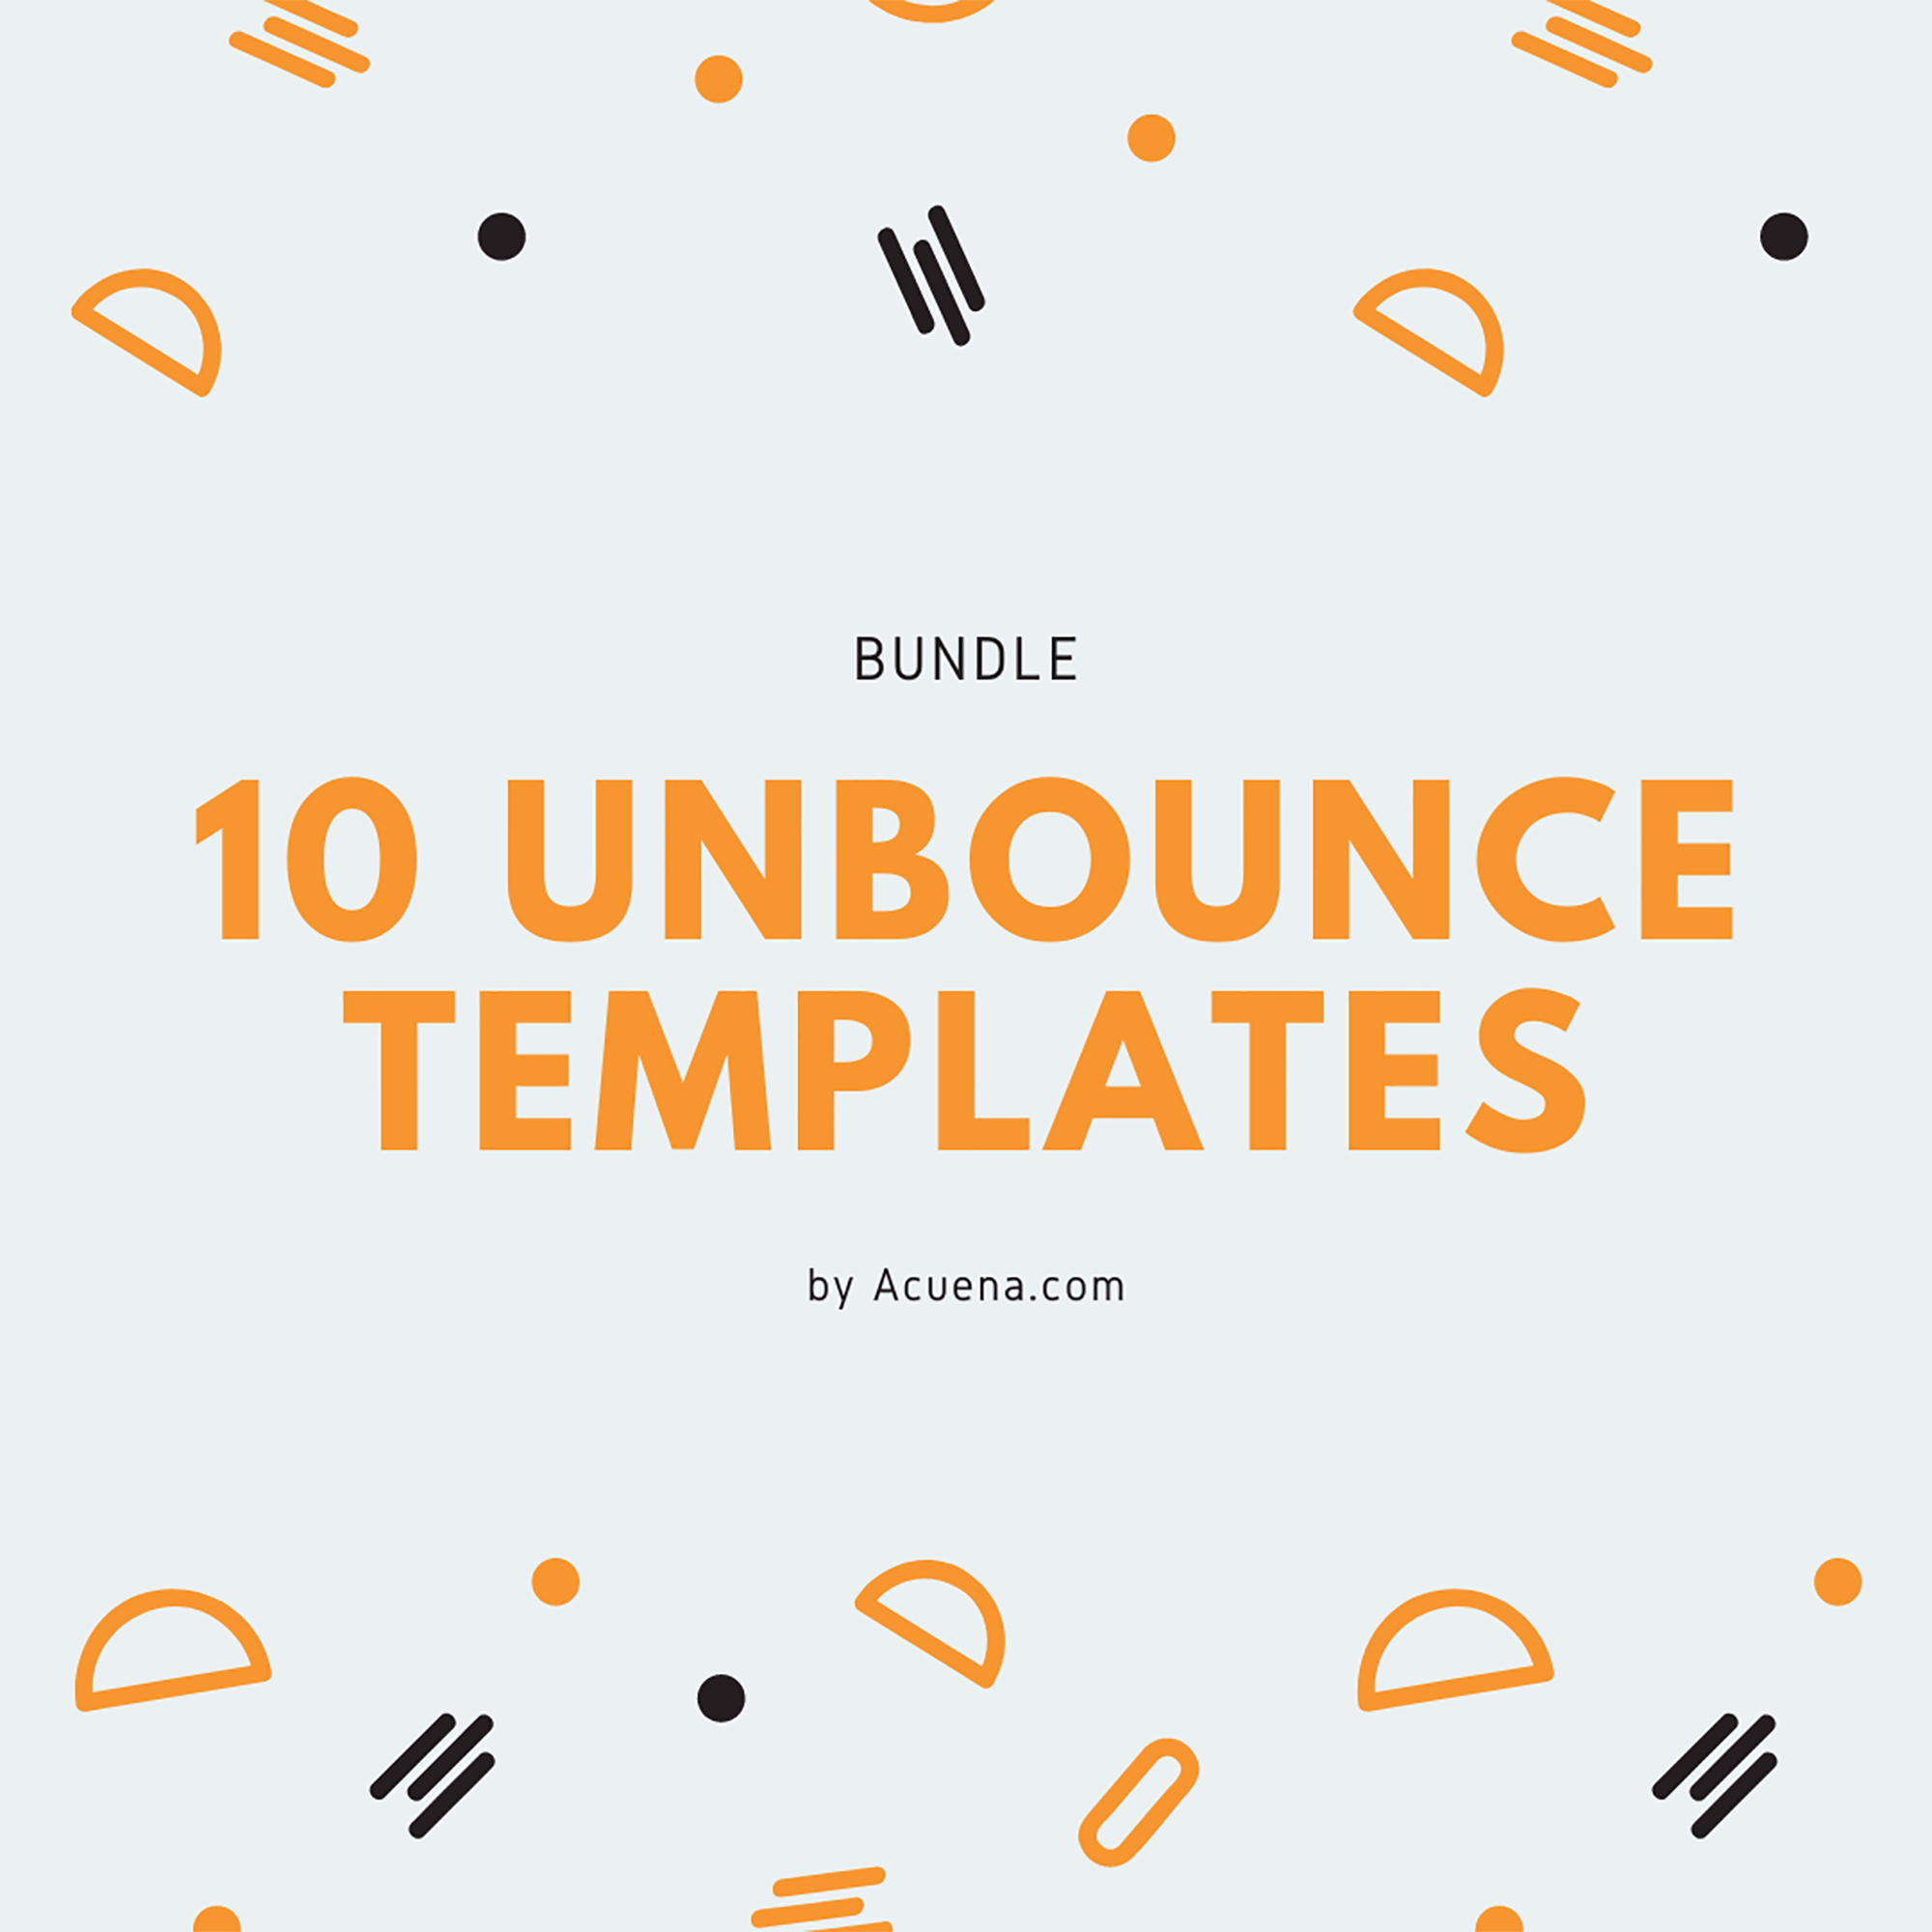 30+ Best Unbounce Templates in 2020: Free and Premium - Premium One Page Unbounce Templates